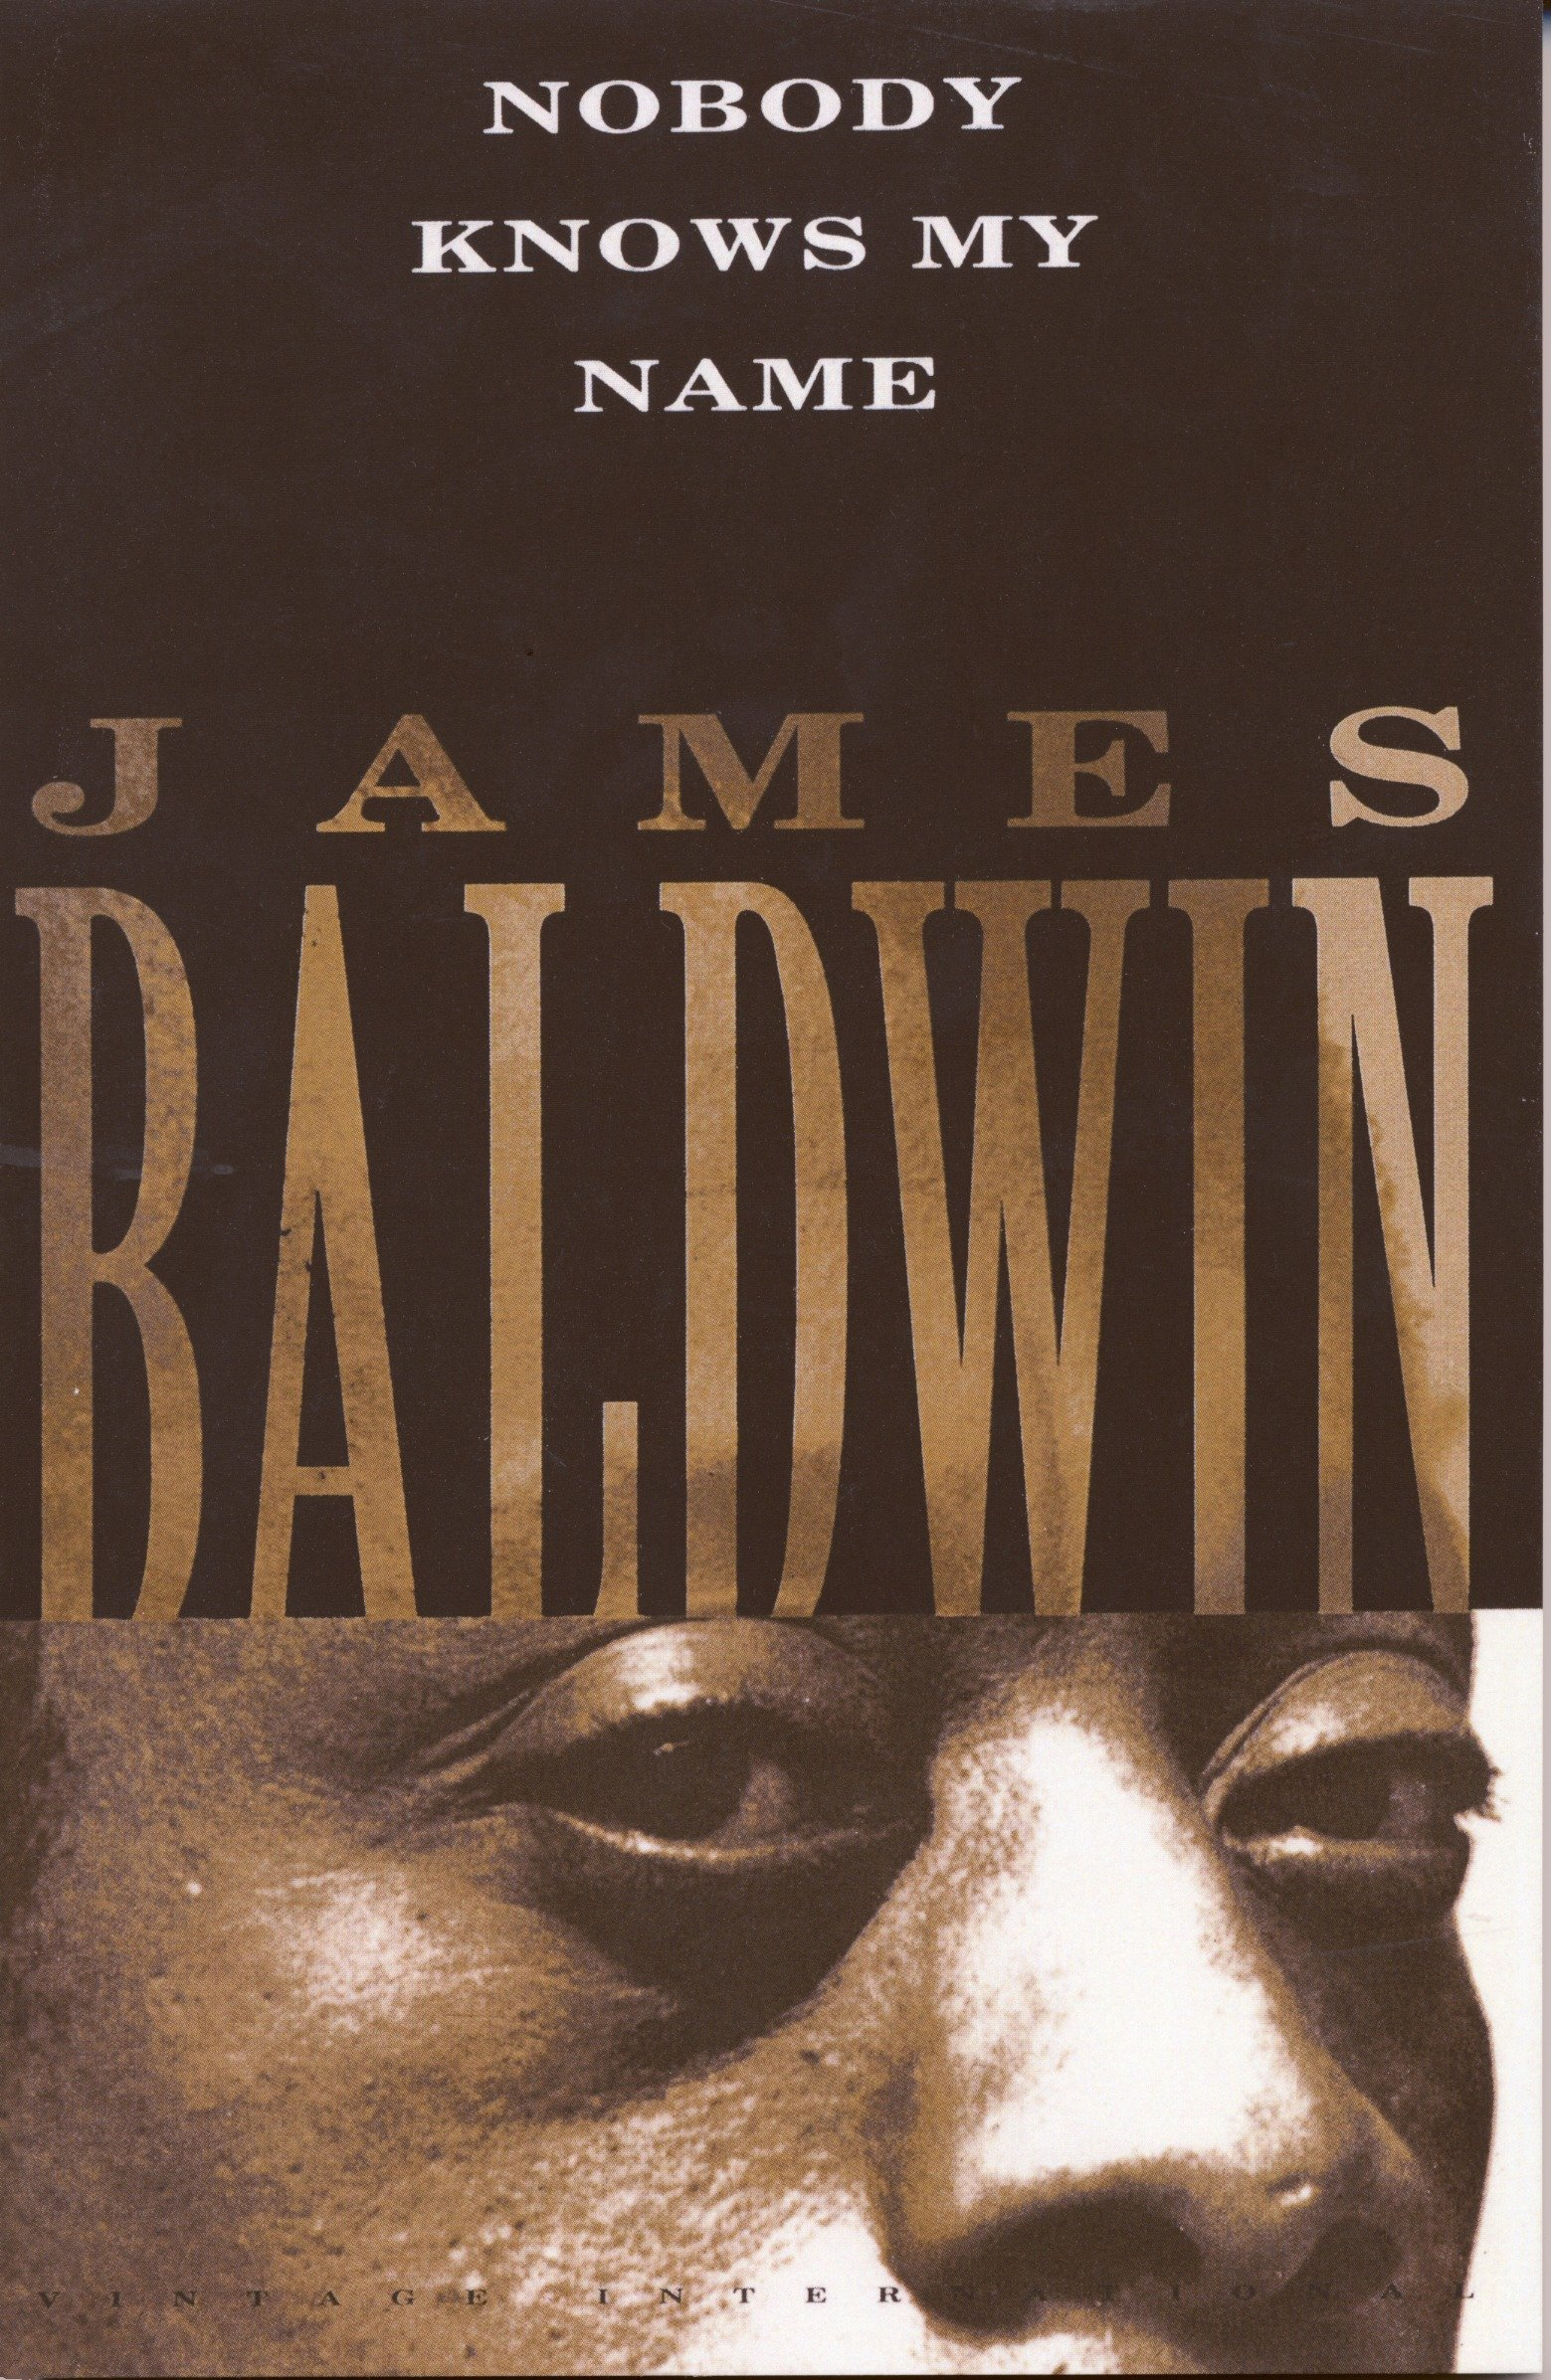 Amazon.com: Nobody Knows My Name (9780679744733): James Baldwin ...